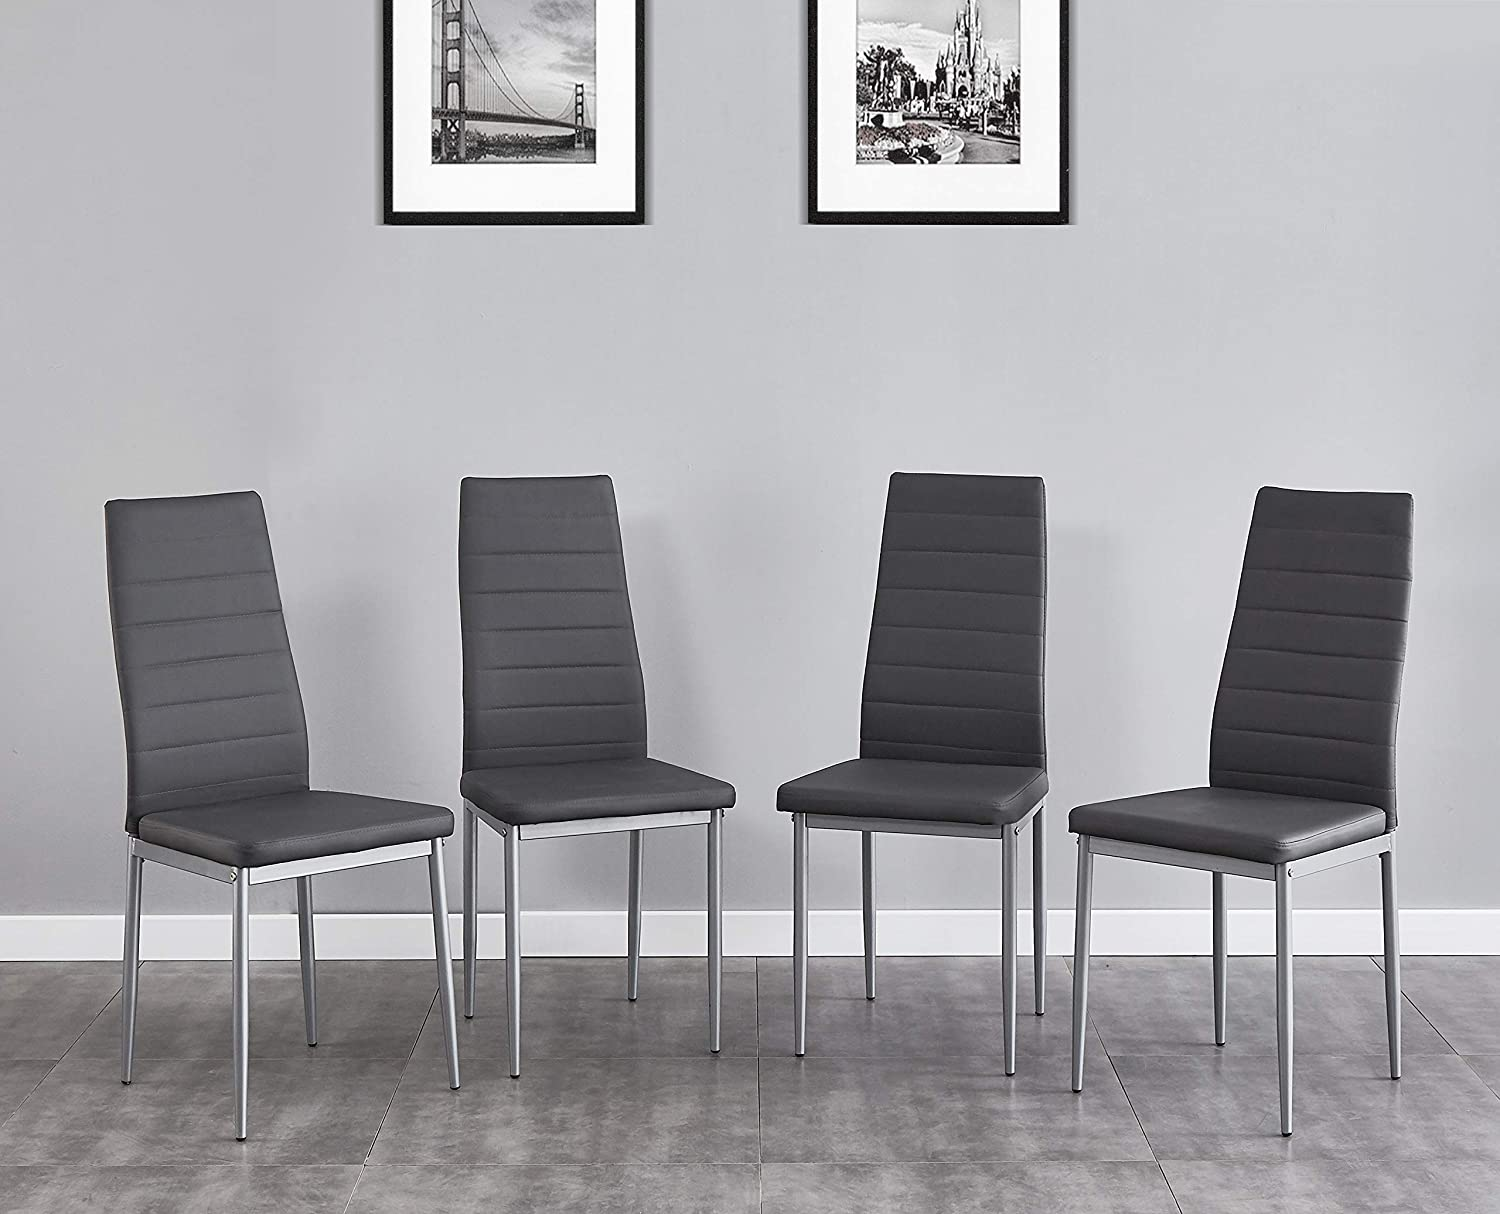 Salbay Dining Chairs Set of 2/4/6,High Back Faux Leather Kitchen Chairs with Chrome Metal Legs for Dining Room Living Room Office and Lounge (Grey, 4) Grey